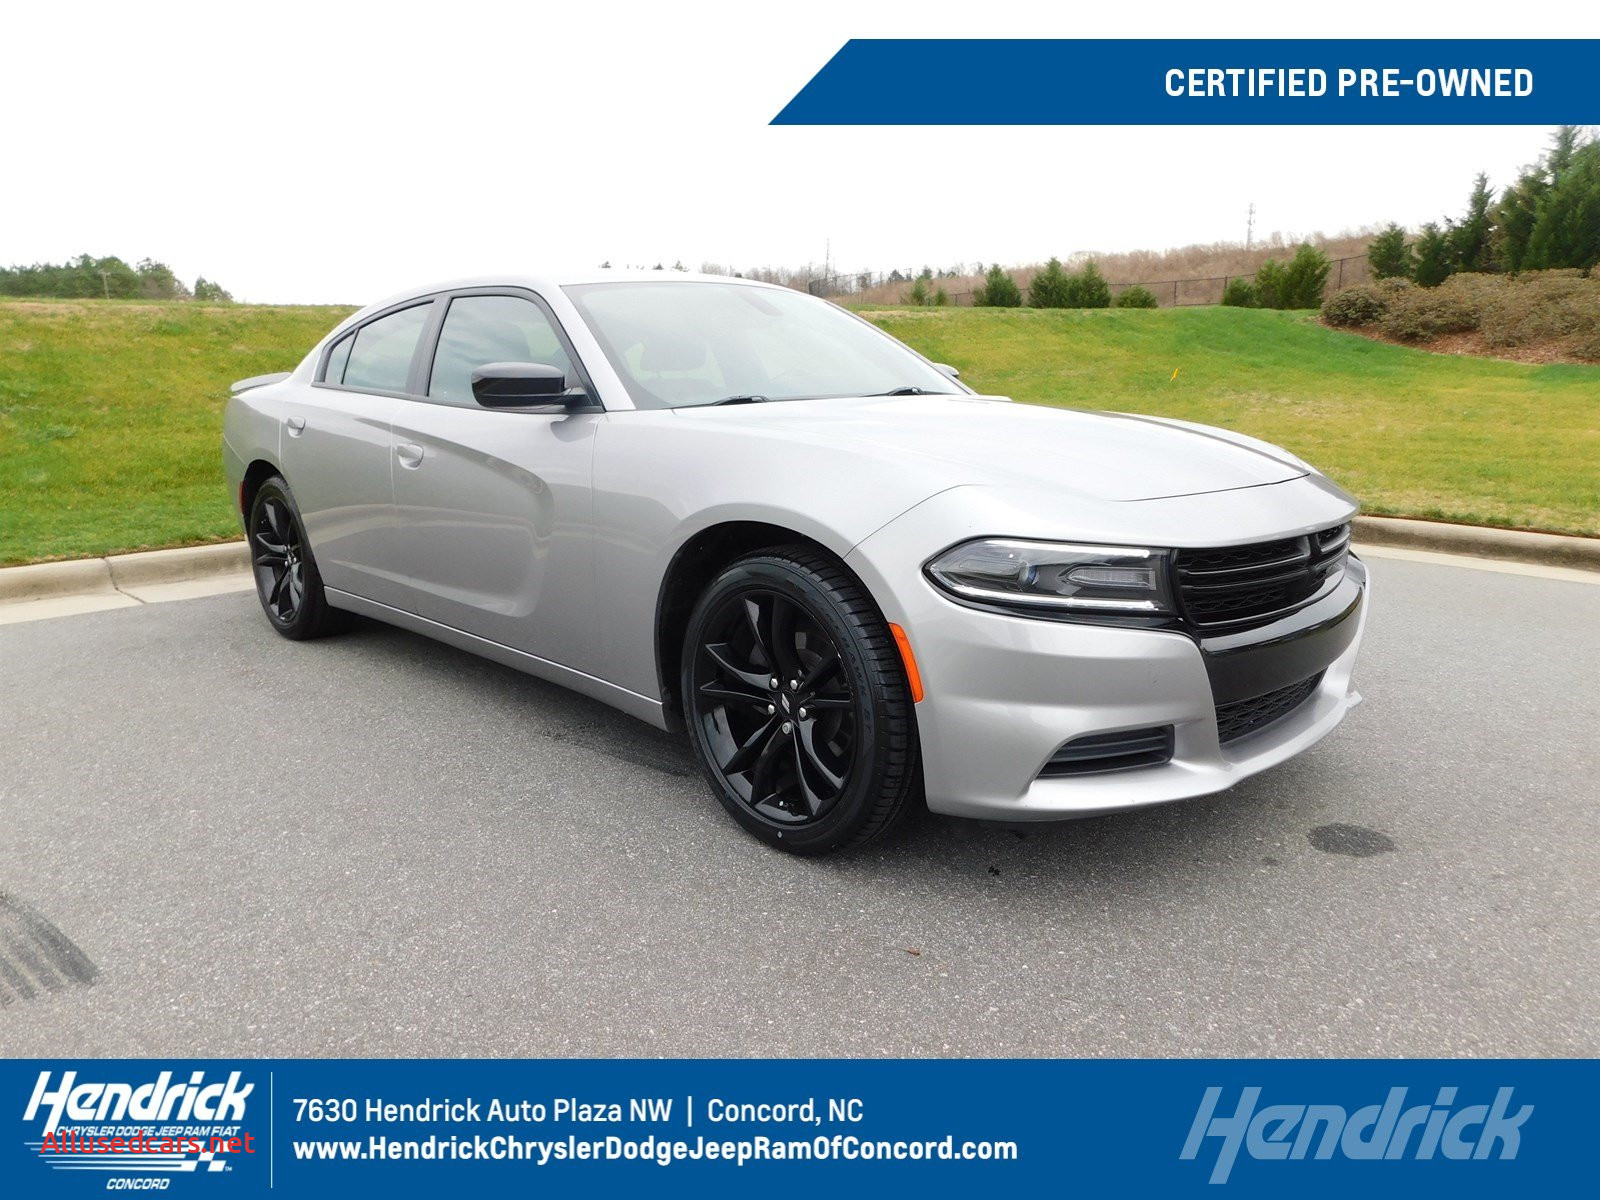 2018 Dodge Charger Sxt Fresh Certified Pre Owned 2018 Dodge Charger Sxt Rwd Sedan